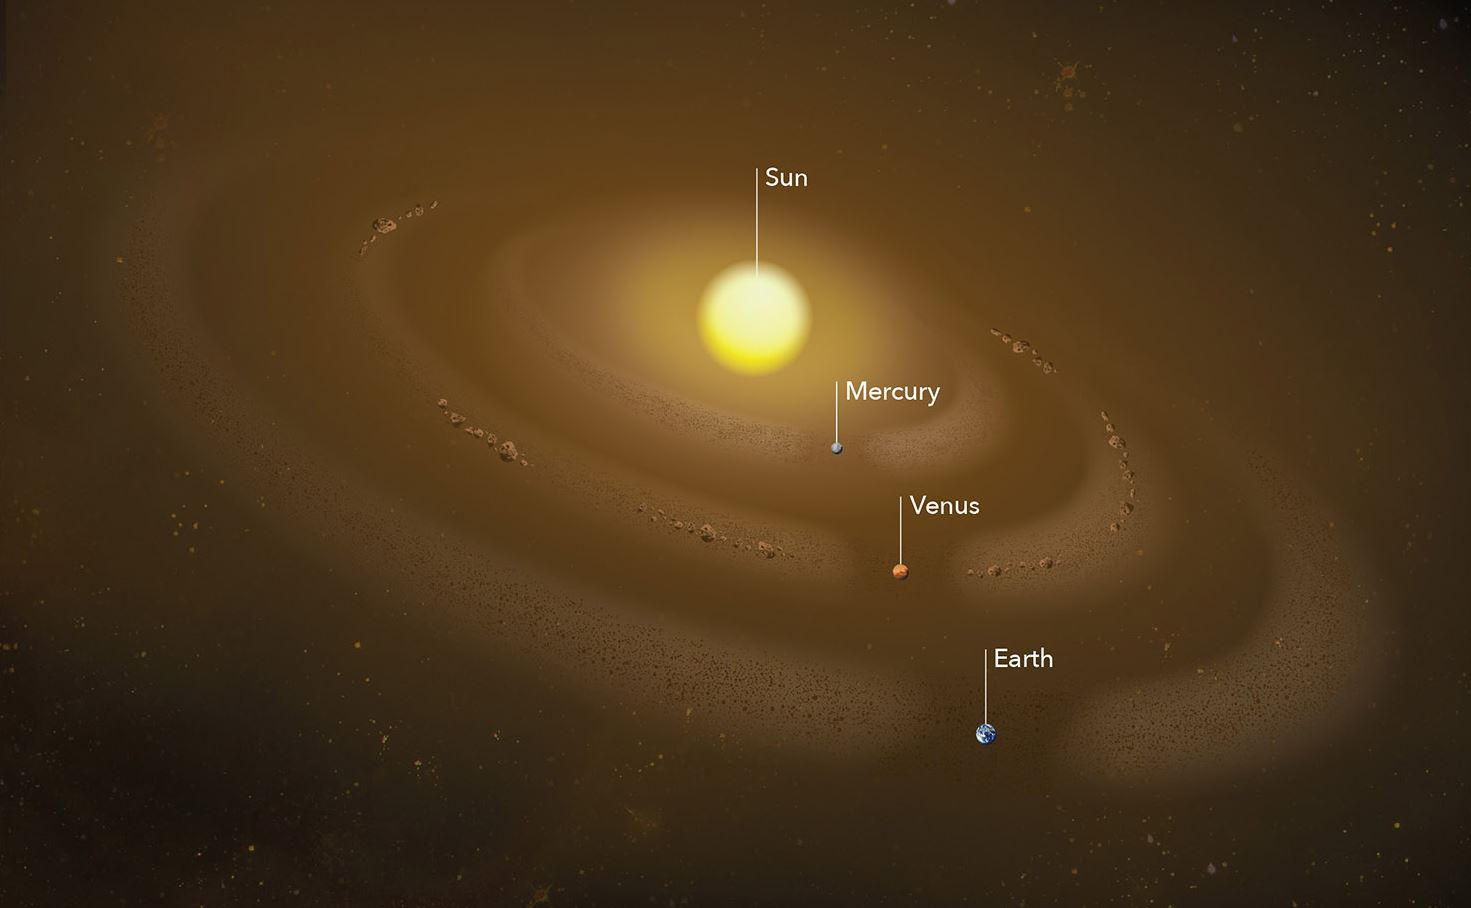 In this illustration, several dust rings circle the Sun. These rings form when planets' gravities tug dust grains into orbit around the Sun. Recently, scientists have detected a dust ring at Mercury's orbit. Others hypothesize the source of Venus' dust ring is a group of never-before-detected co-orbital asteroids. - Image Credit:  NASA's Goddard Space Flight Center/Mary Pat Hrybyk-Keith